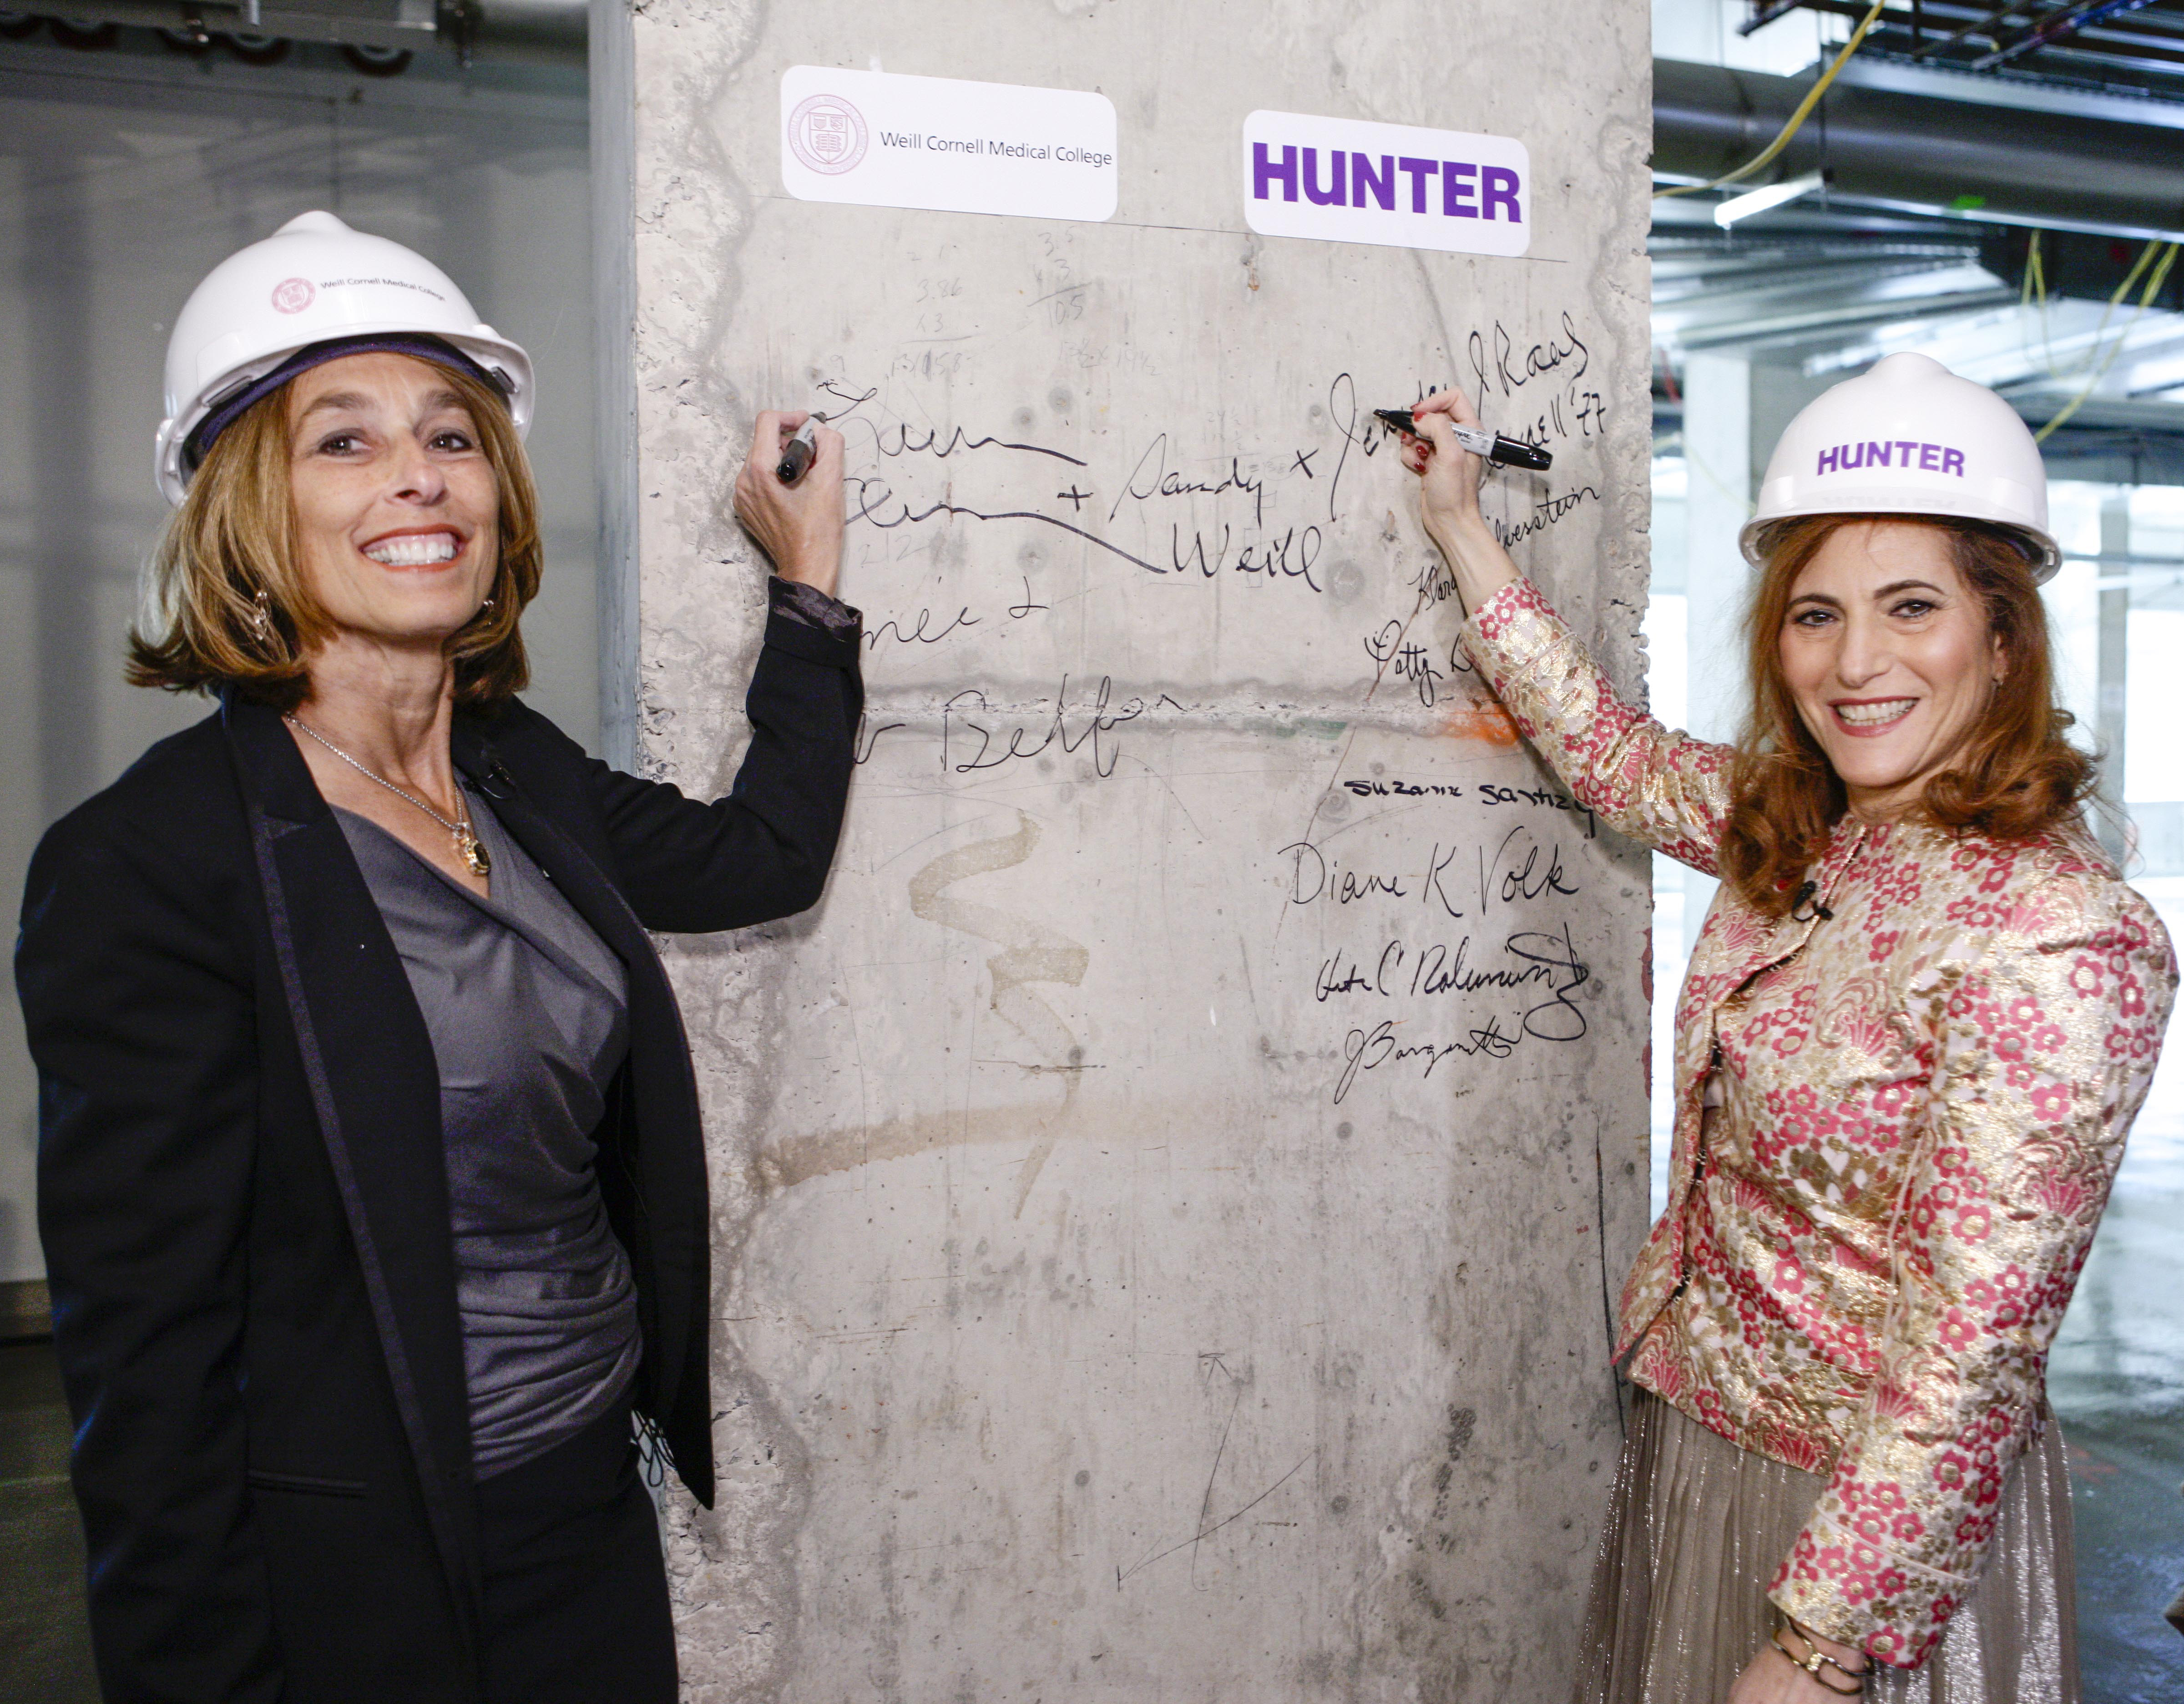 College hunter physical therapy - Hunter Researchers To Collaborate In New Cutting Edge Weill Cornell Medical College Belfer Research Building On East Side